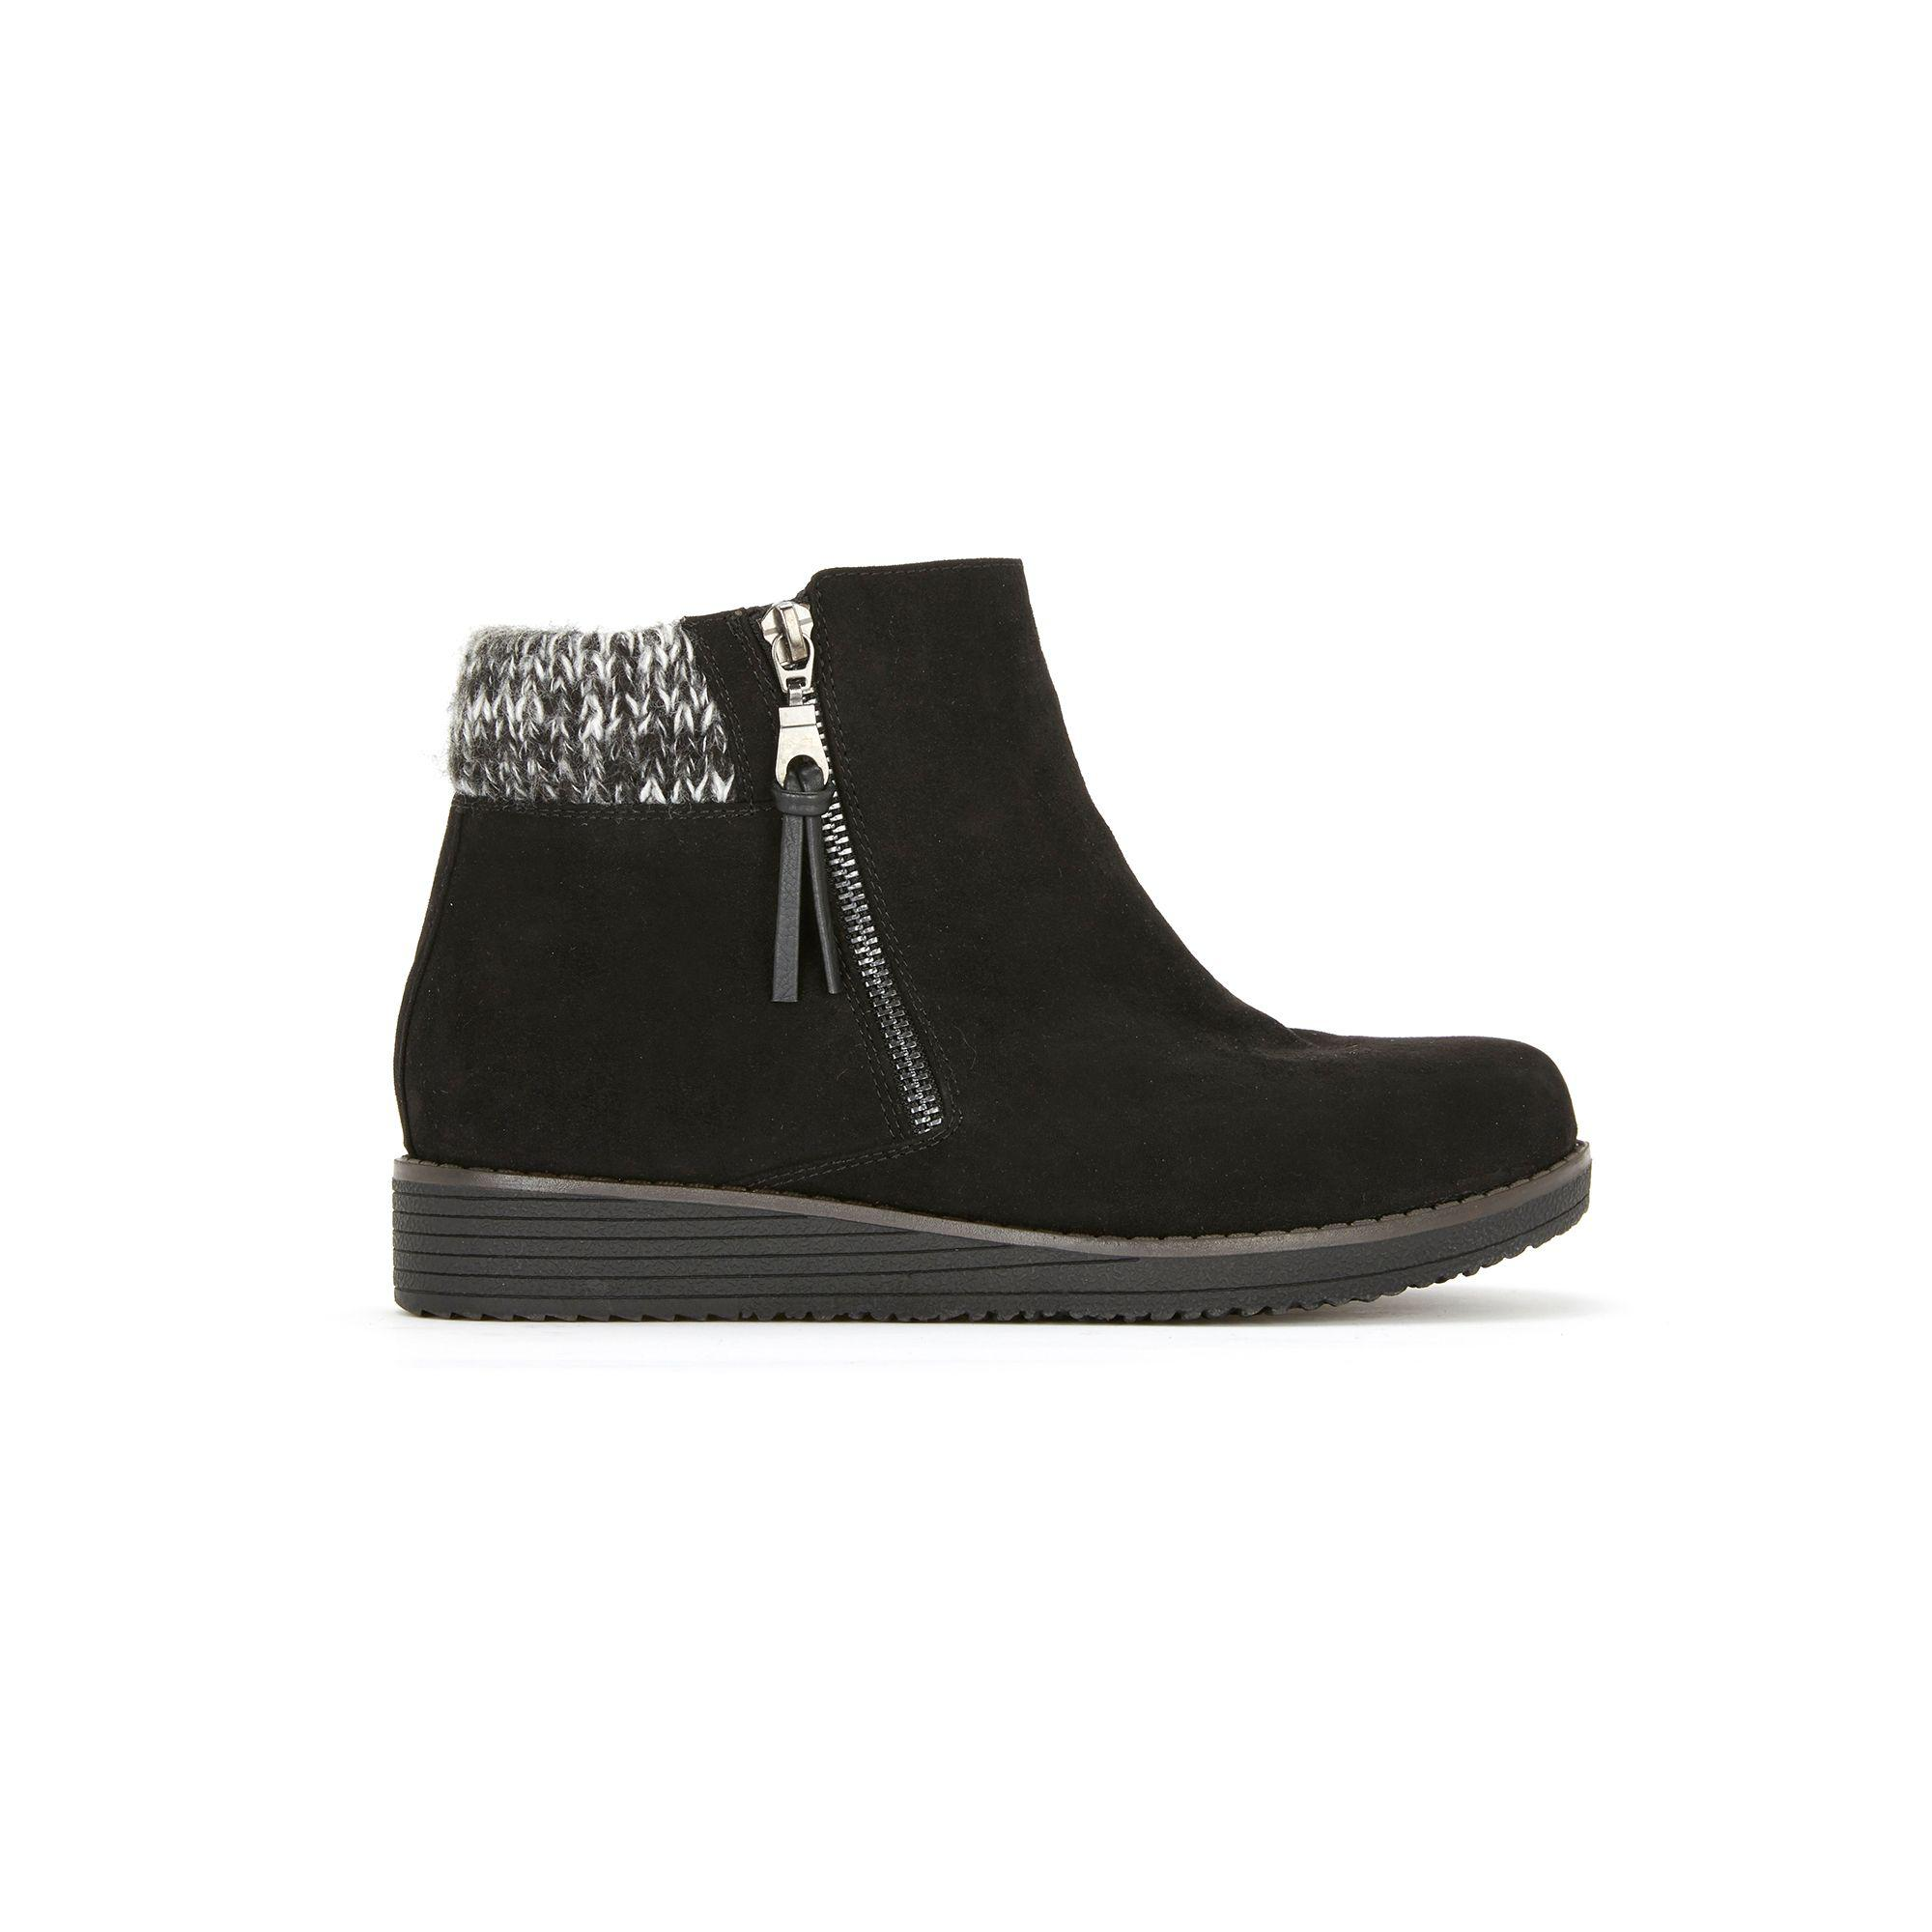 35d8528d542 Evans - Wide Fit Black Knit Cuff Wedge Ankle Boots - Lyst. View fullscreen